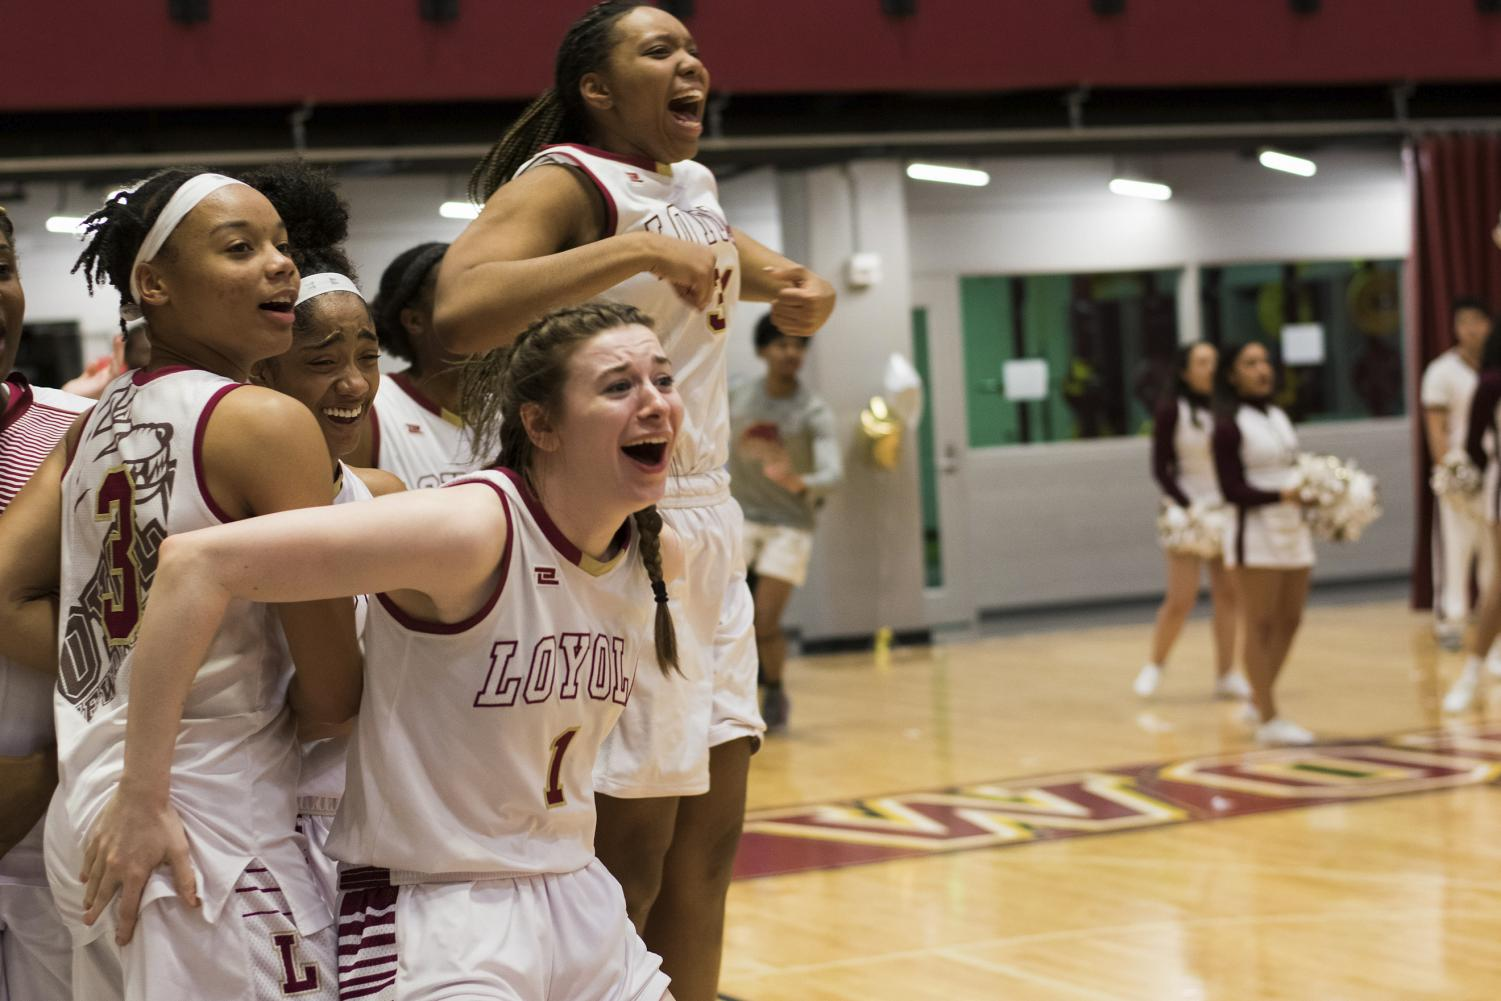 Accounting senior Paige Franckiewicz and the women's team have earned three championship rings. One after the team won the regular season title, and two rings for being conference  champions. Photo credit: Michael Bauer